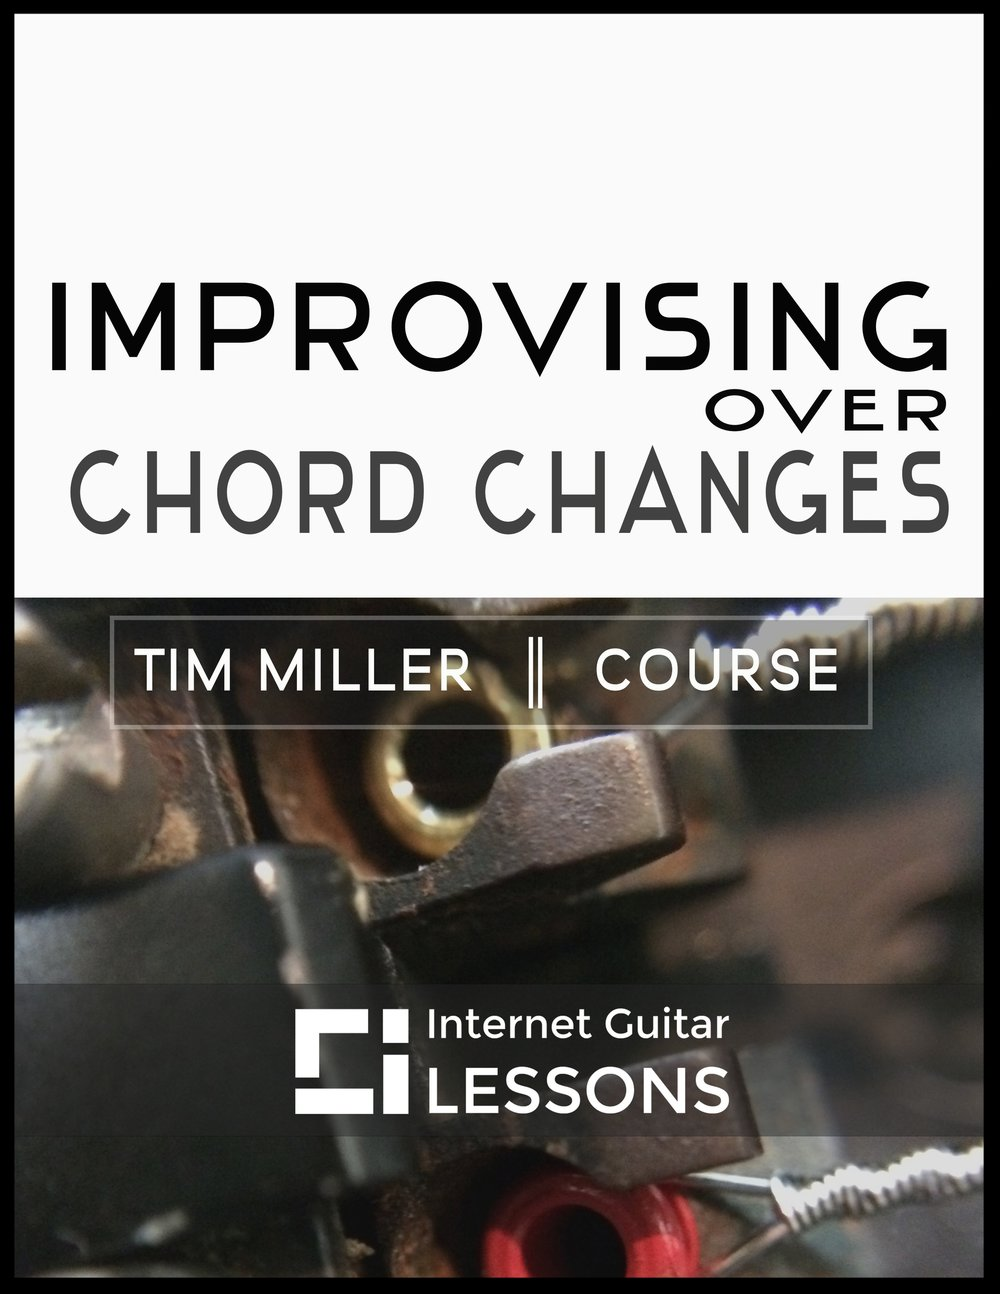 Improvising over Chord Changes 1.17 flat.jpg